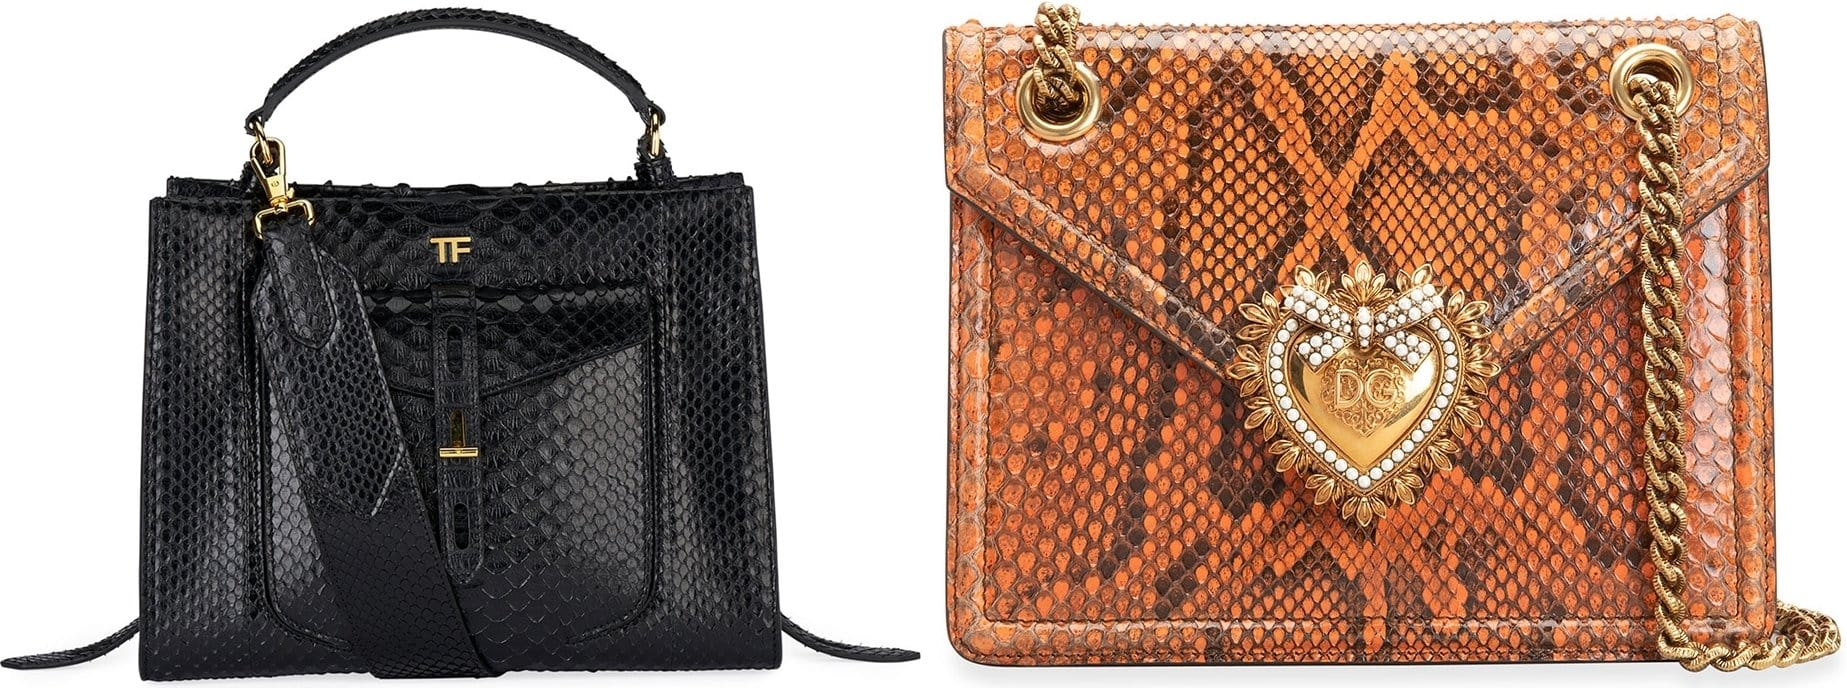 Tom Ford top-handle bag in genuine python snakeskin (L) and Dolce & Gabbana python crossbody bag with leather trim (R)